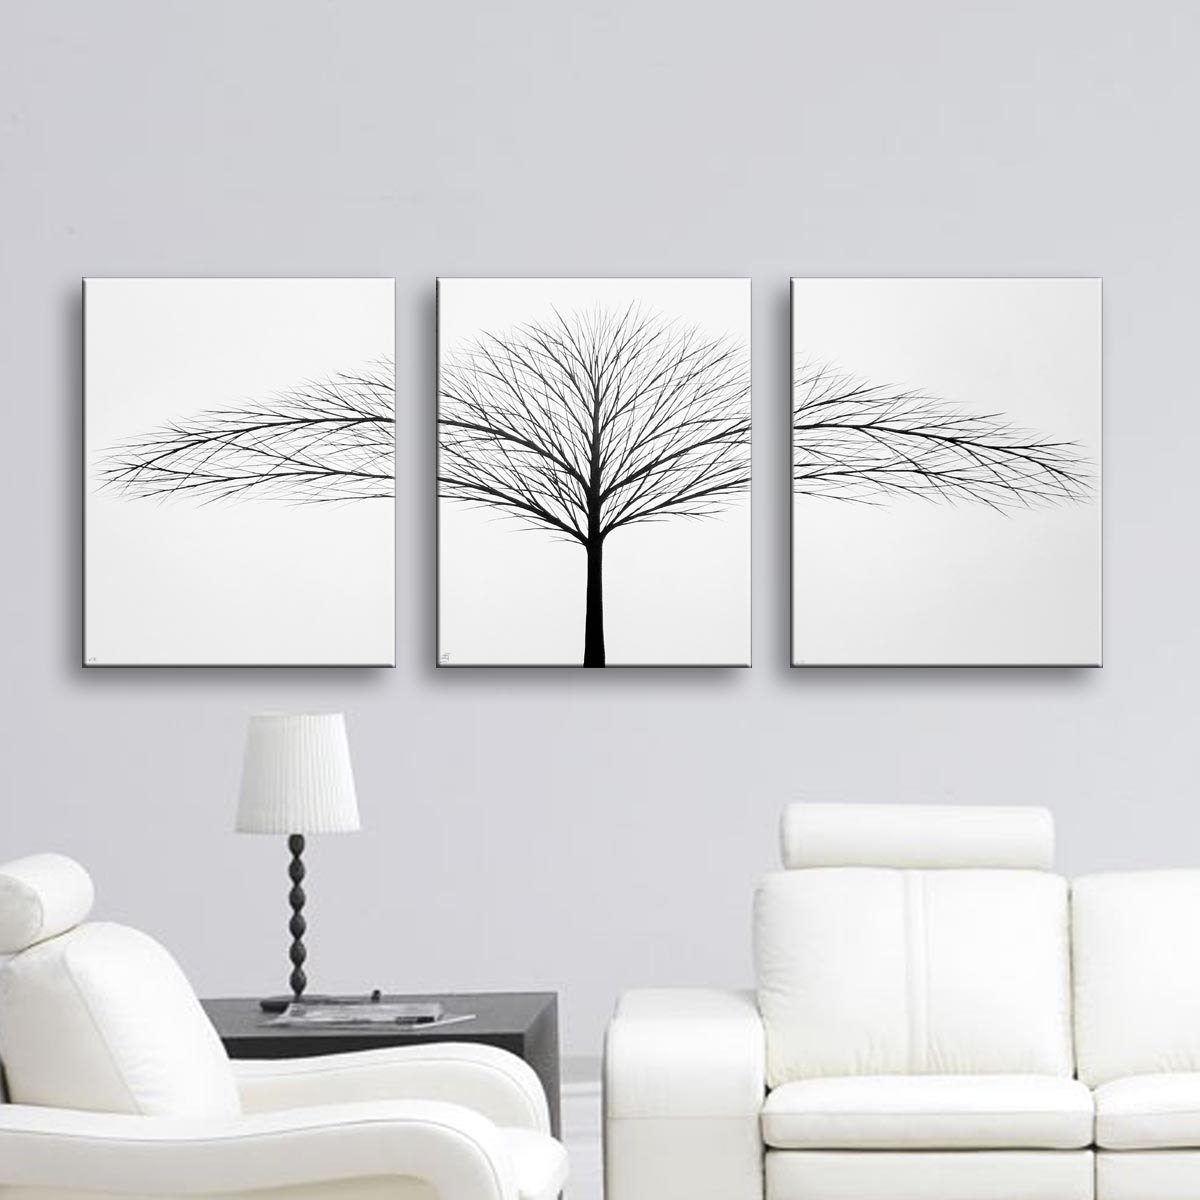 Black And White Wall Art For Living Room Ideas Decor Prints With Regard To Popular Black And White Wall Art (View 12 of 15)